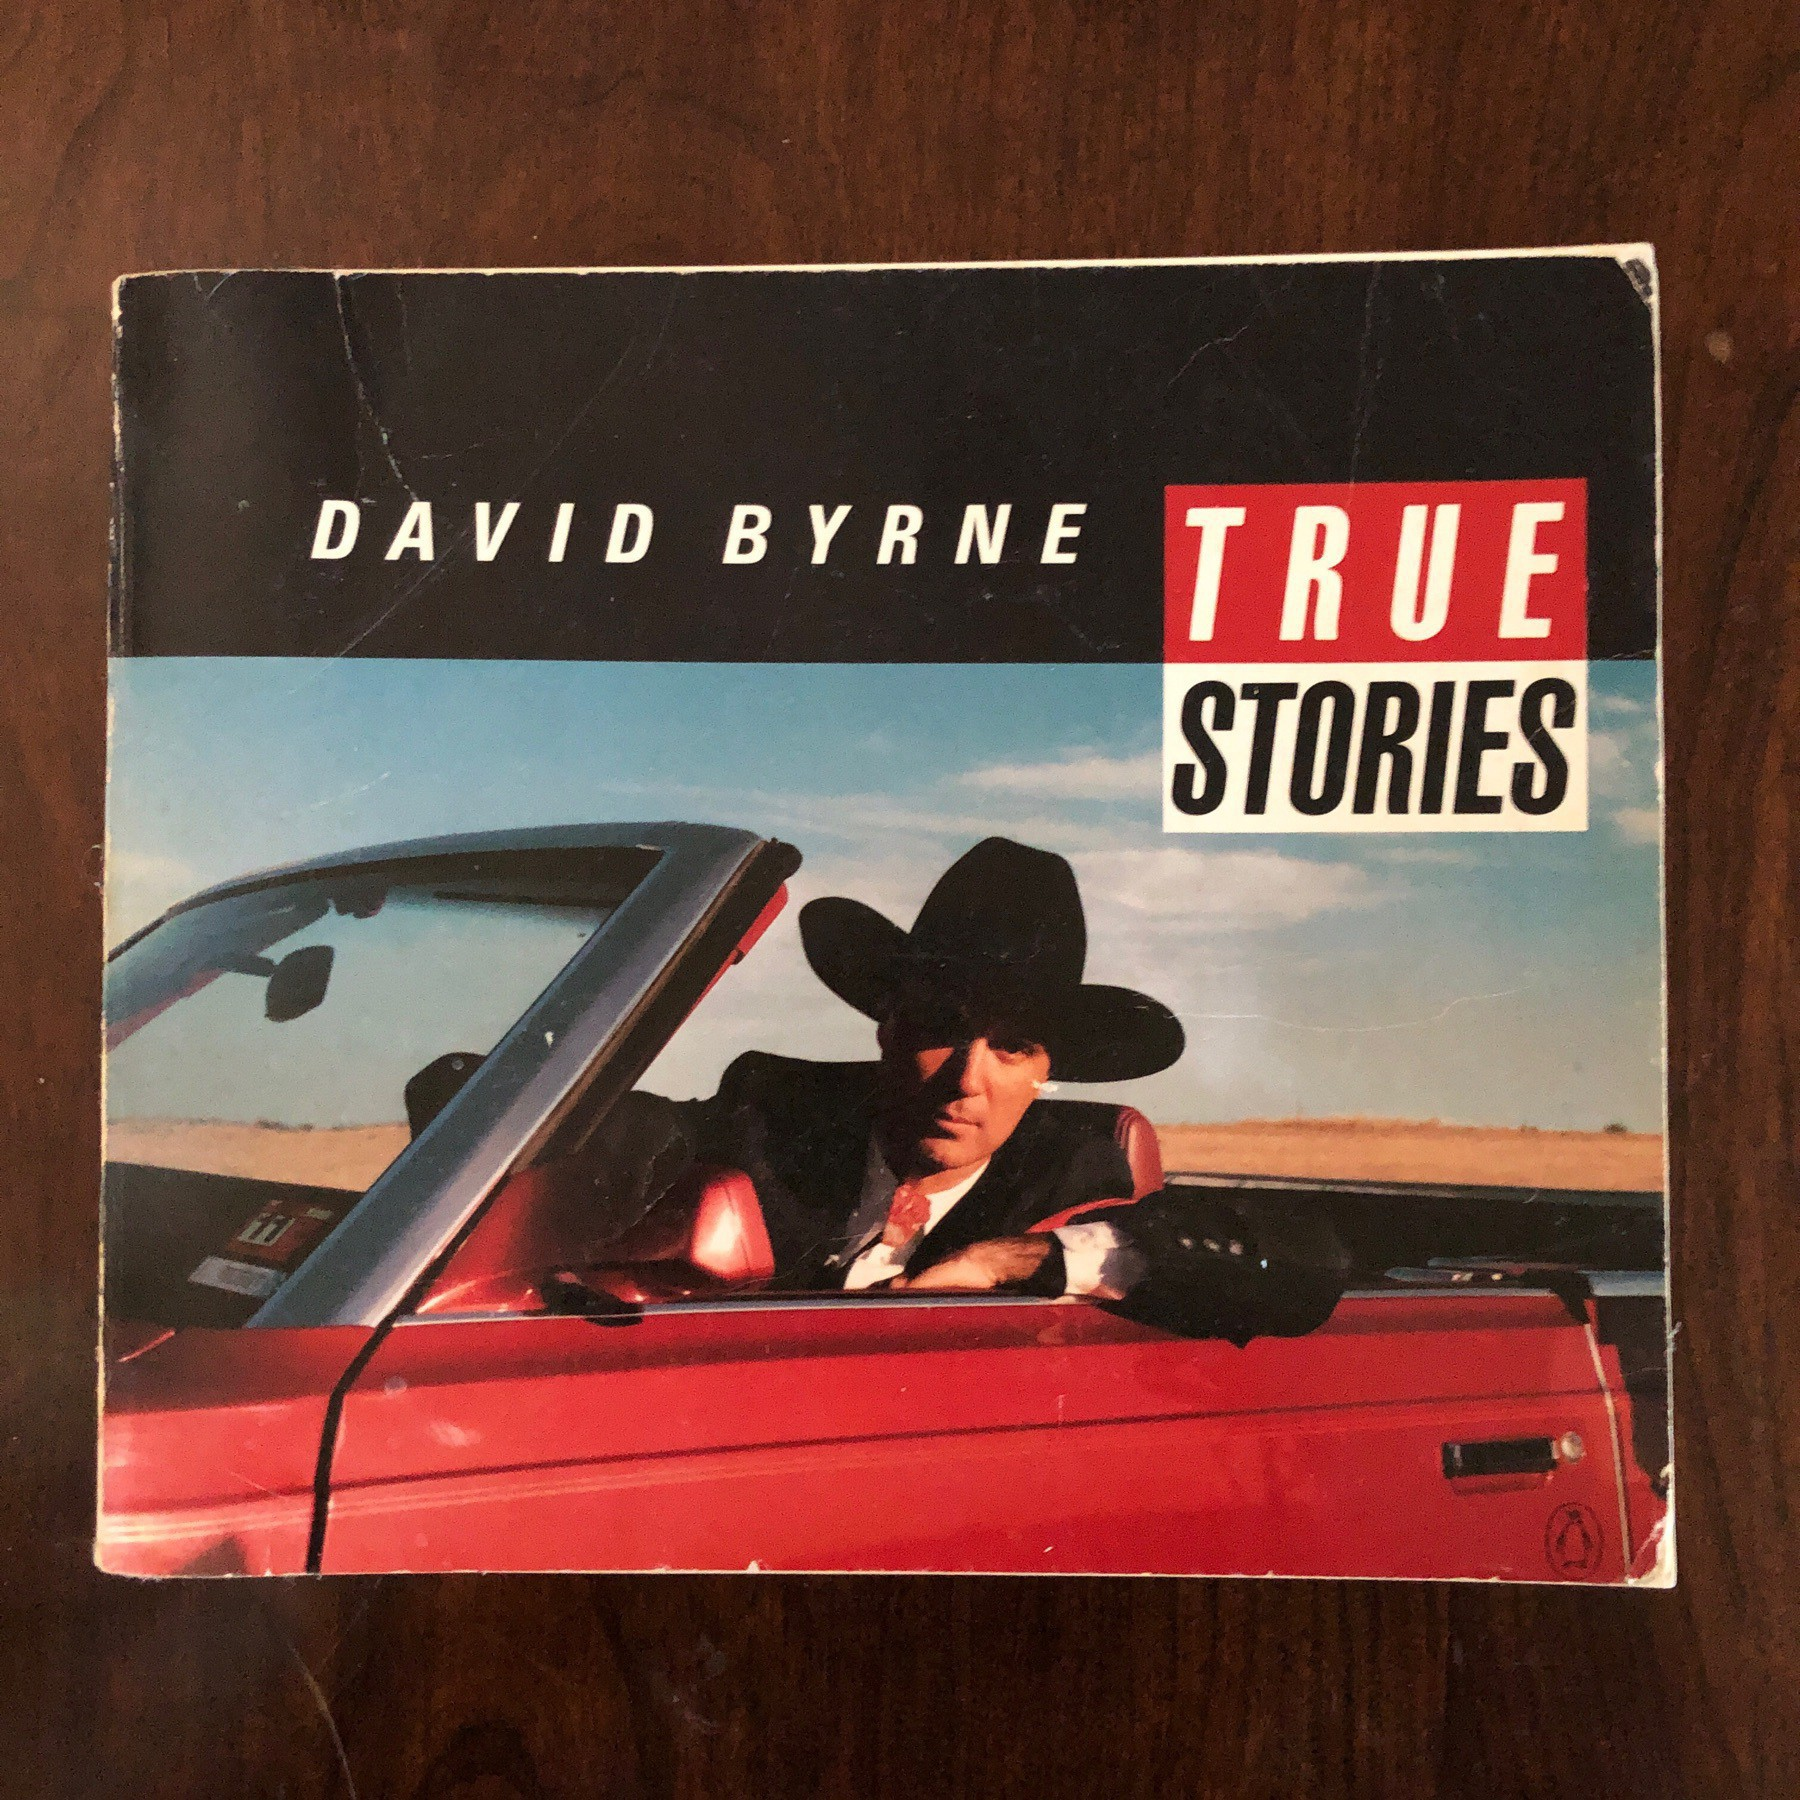 Cover of the book True Stories